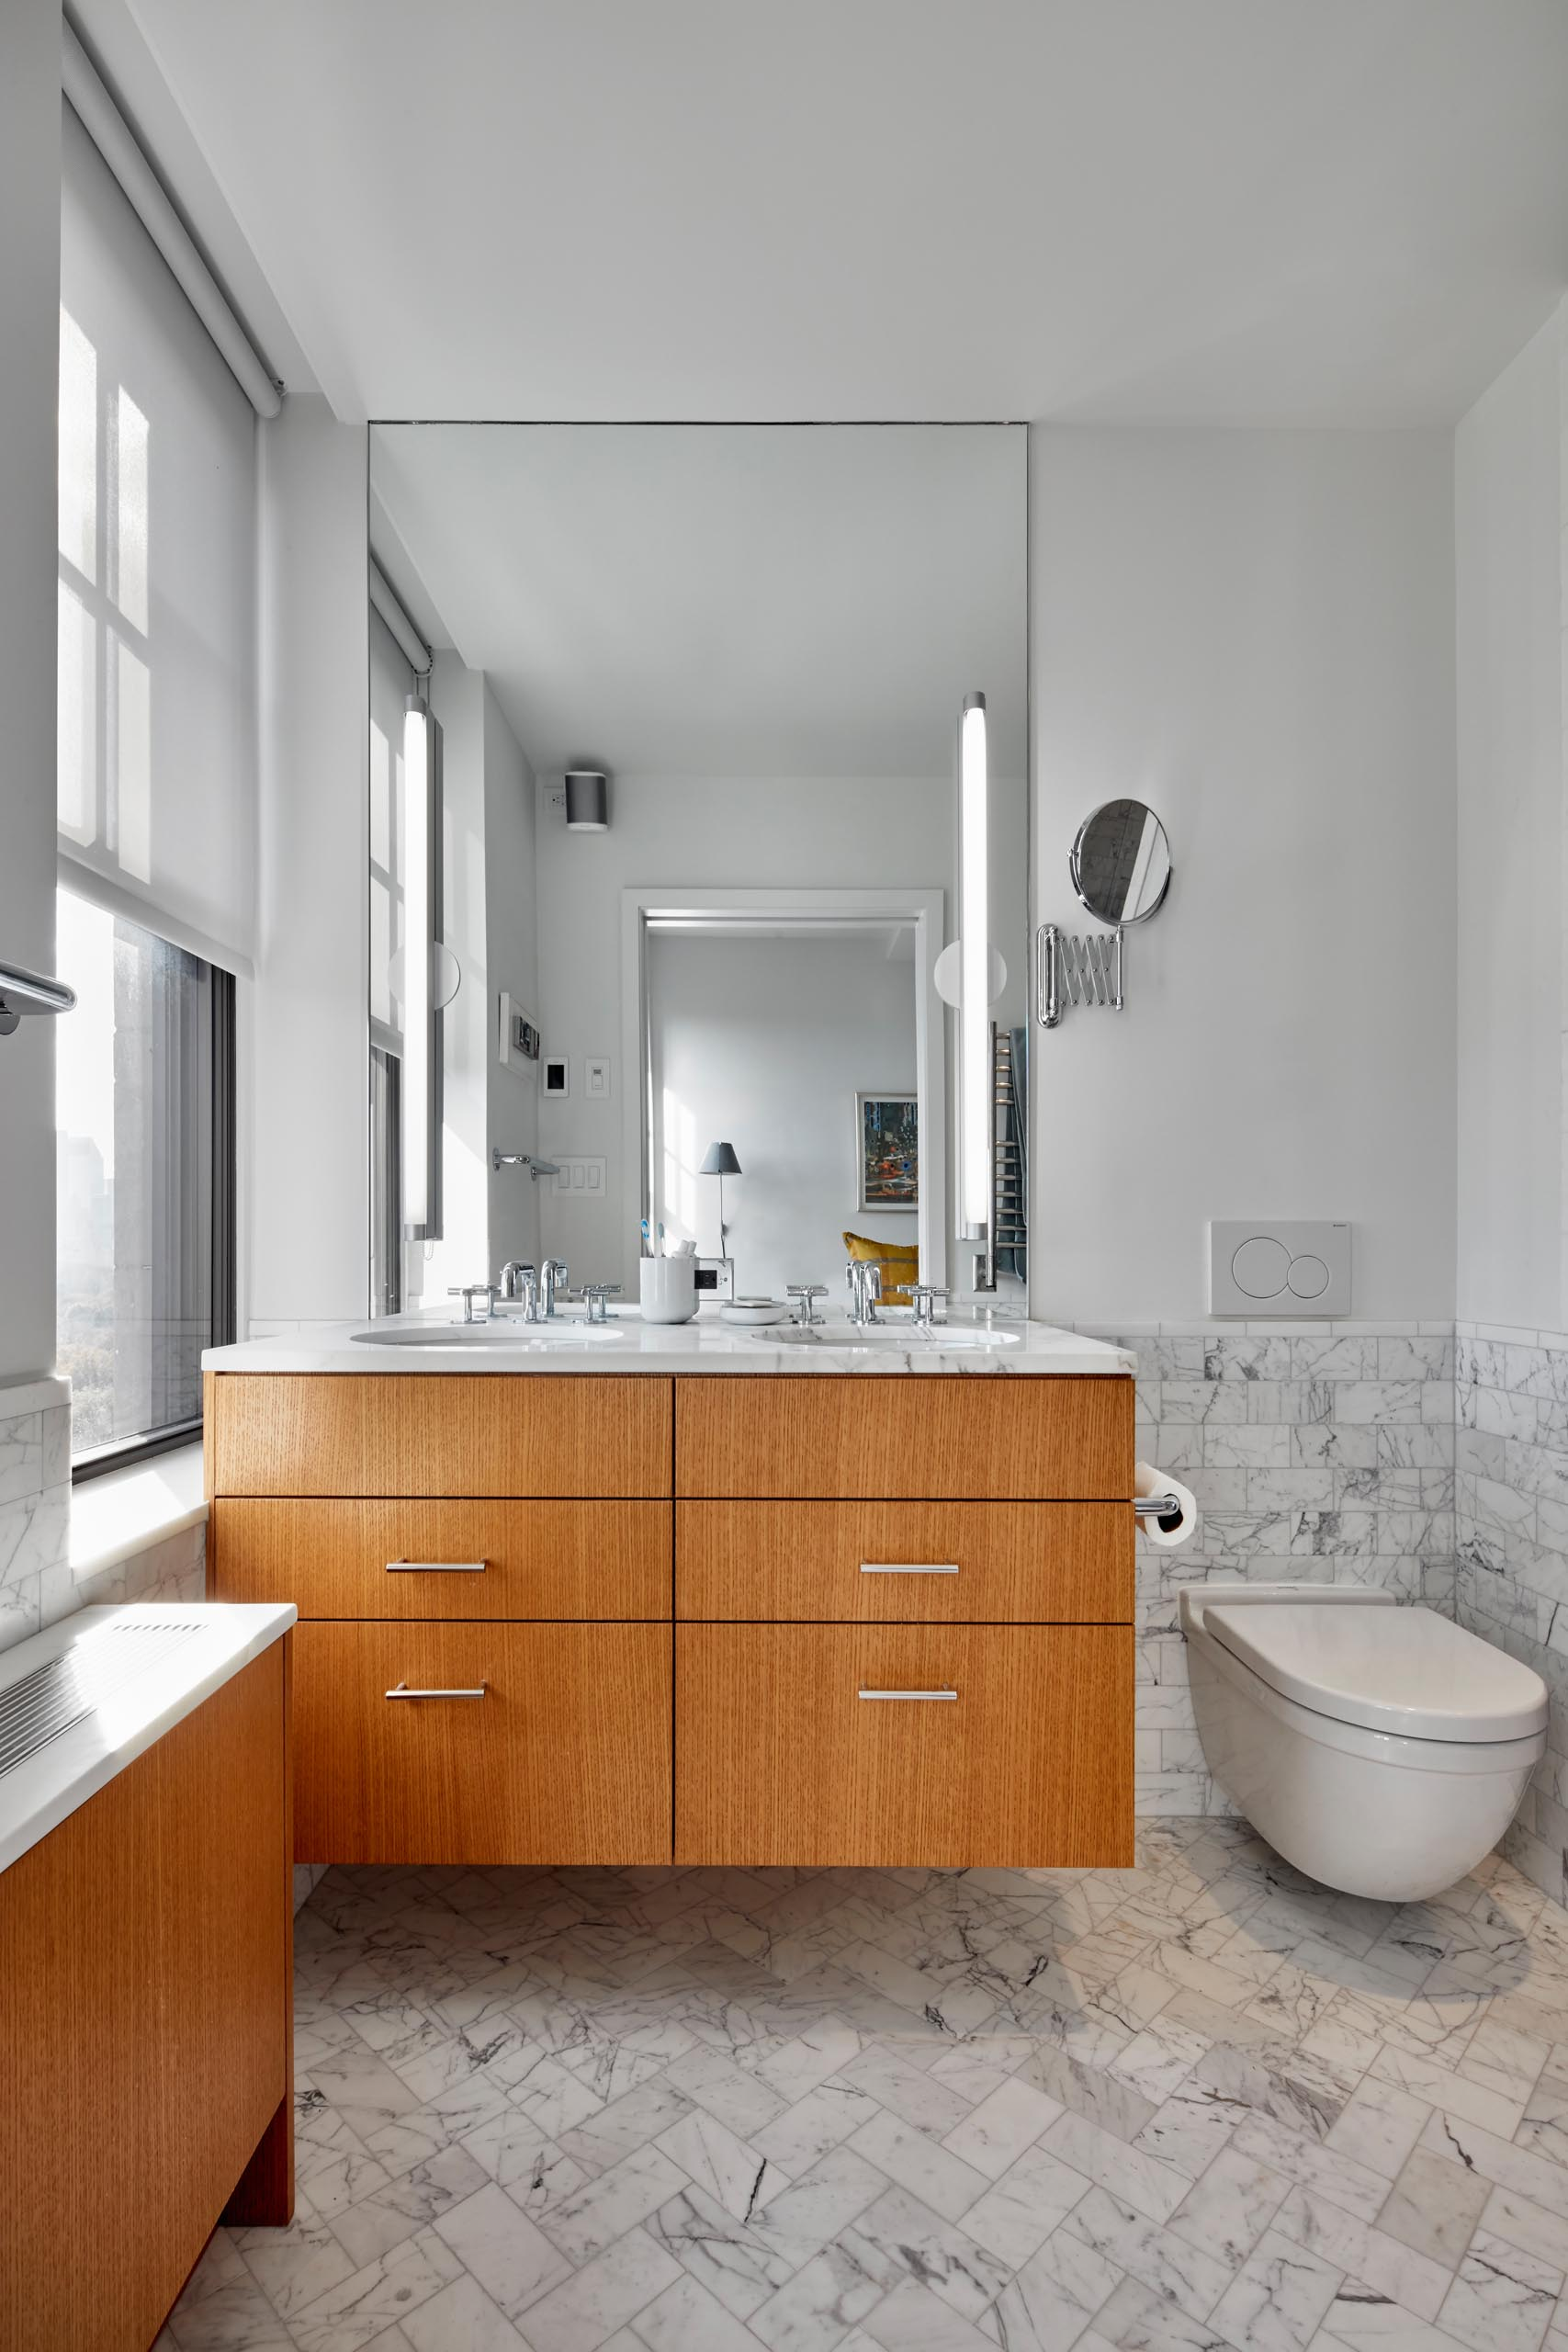 A modern bathroom with a wood vanity and radiator cover, and marbled tiles.